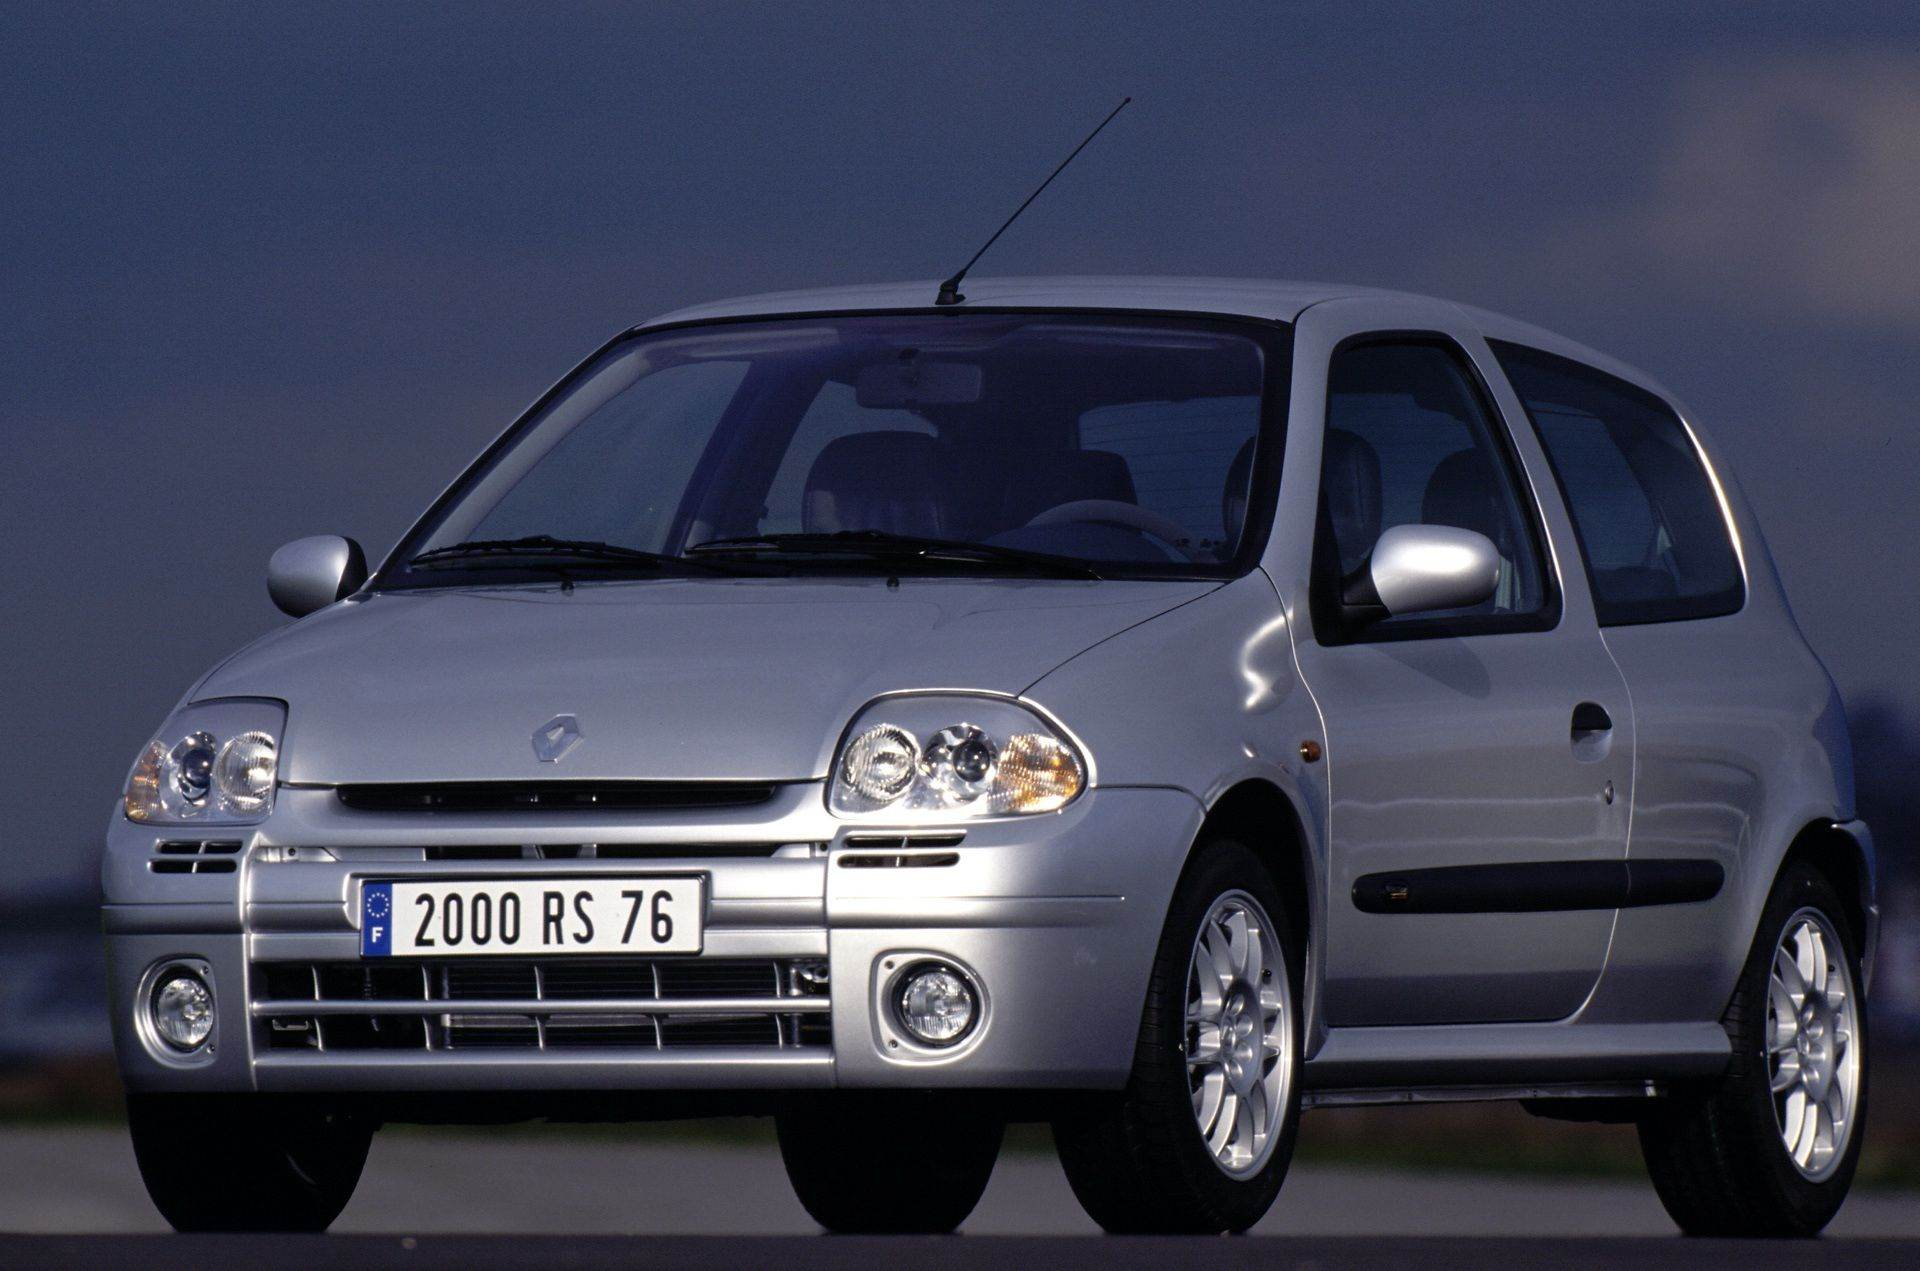 2020-30-years-of-Renault-CLIO-Renault-CLIO-2-1998-2005-5